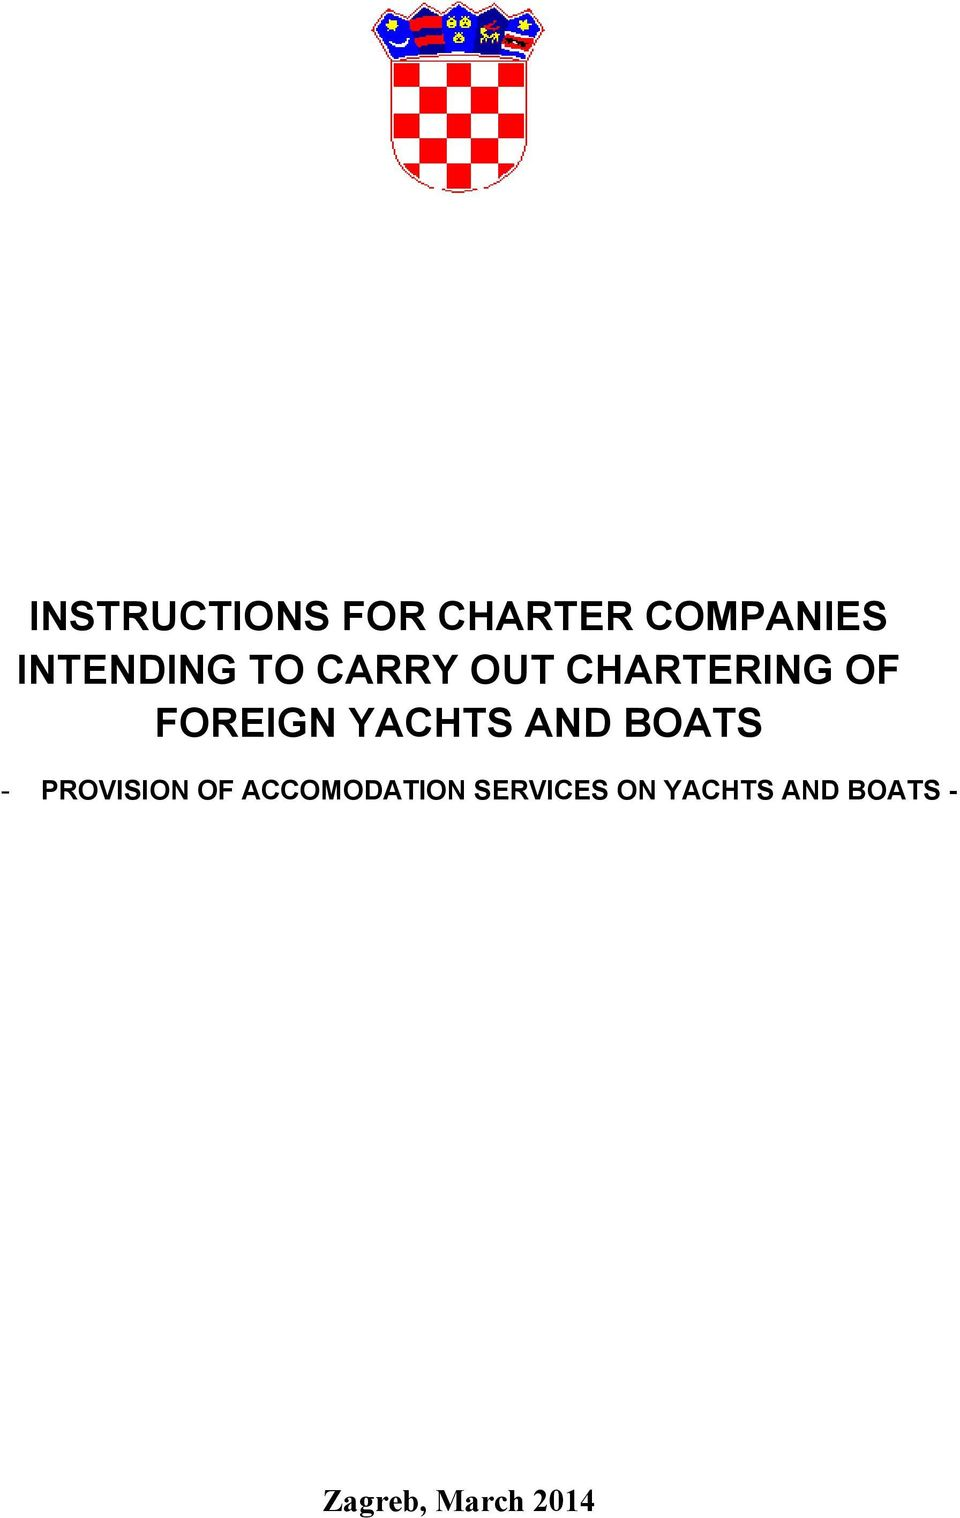 FOREIGN YACHTS AND BOATS - PROVISION OF